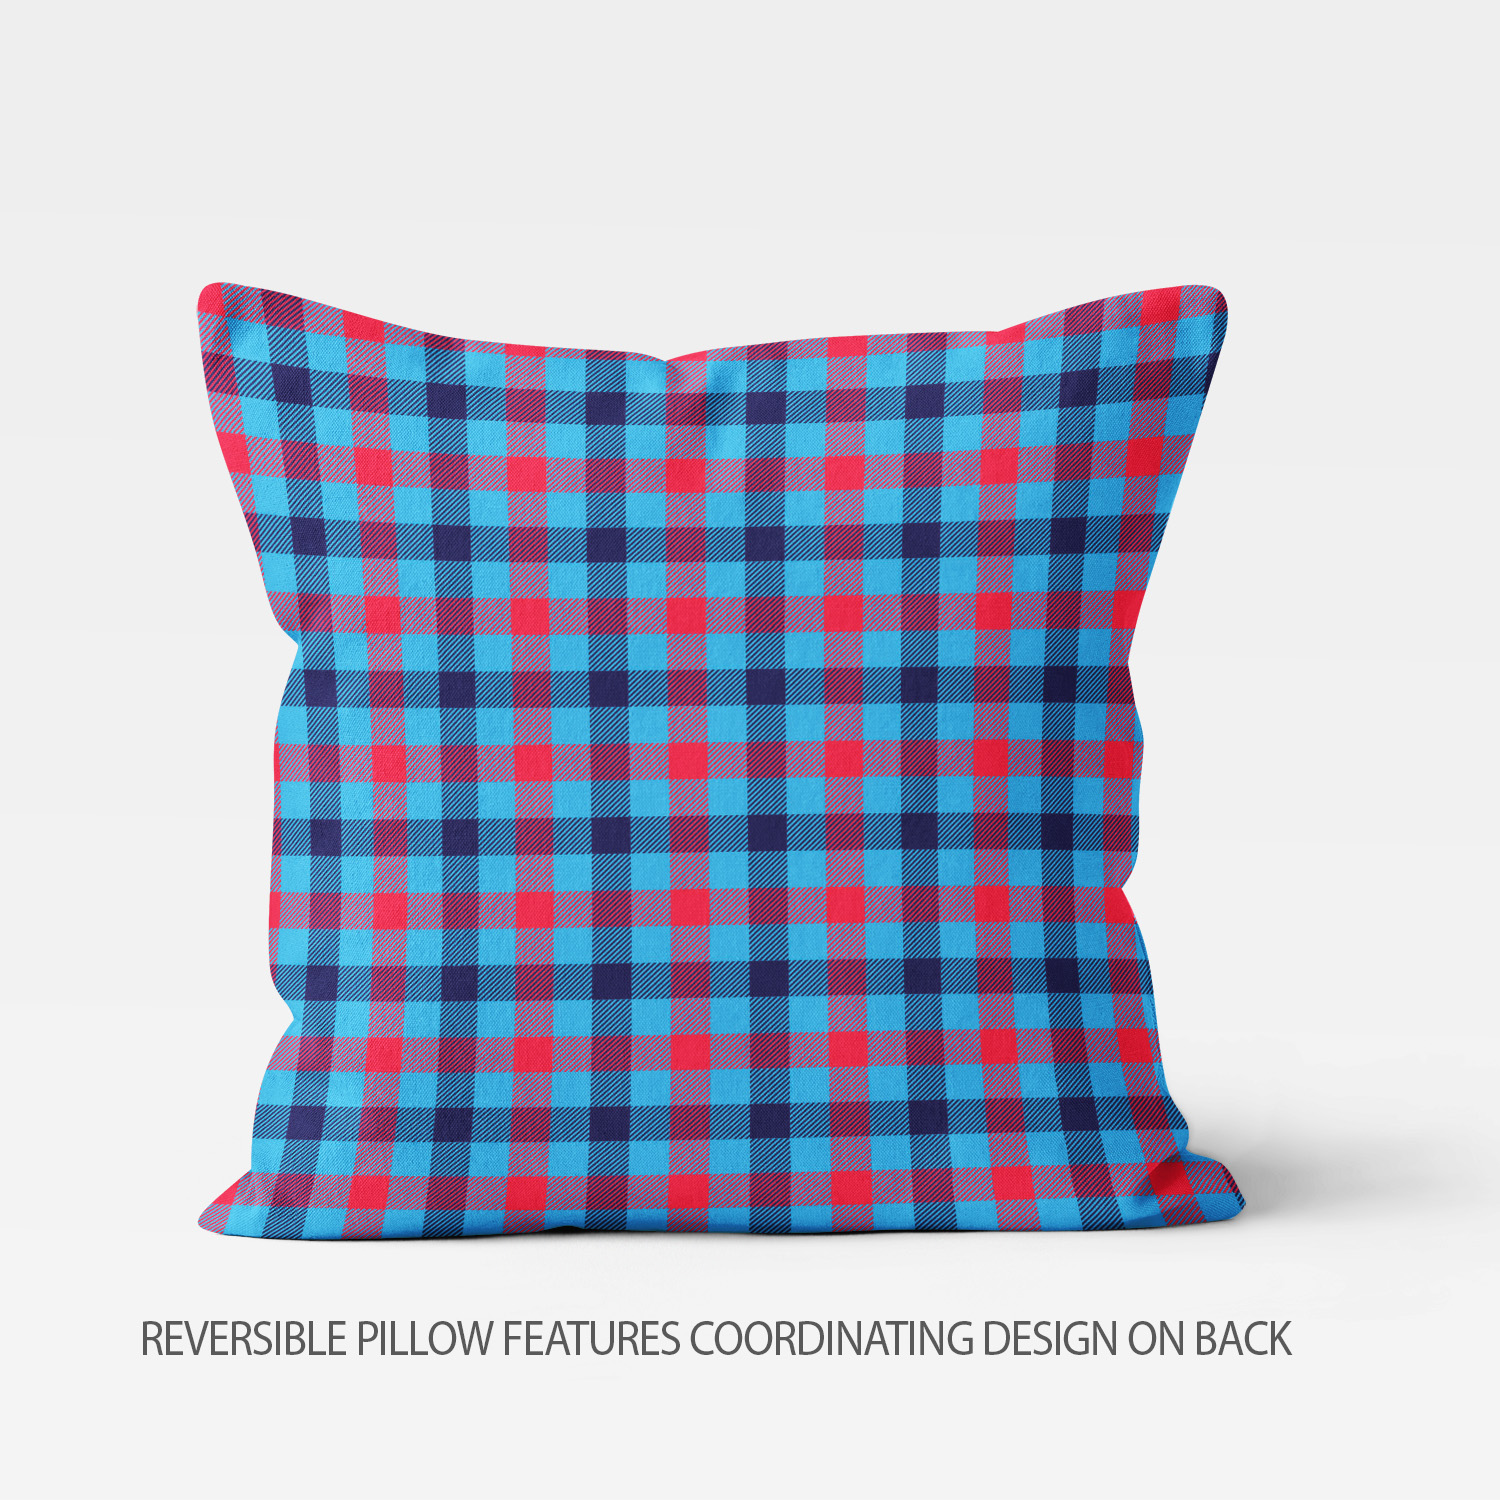 PKTP-00008-OceanAdventures-THROWPILLOW Ocean Adventures Nautical Theme Red/Blue Plaid Boys Kids Accent Throw Pillow Room Decor Accessories by Pickleberry Kids